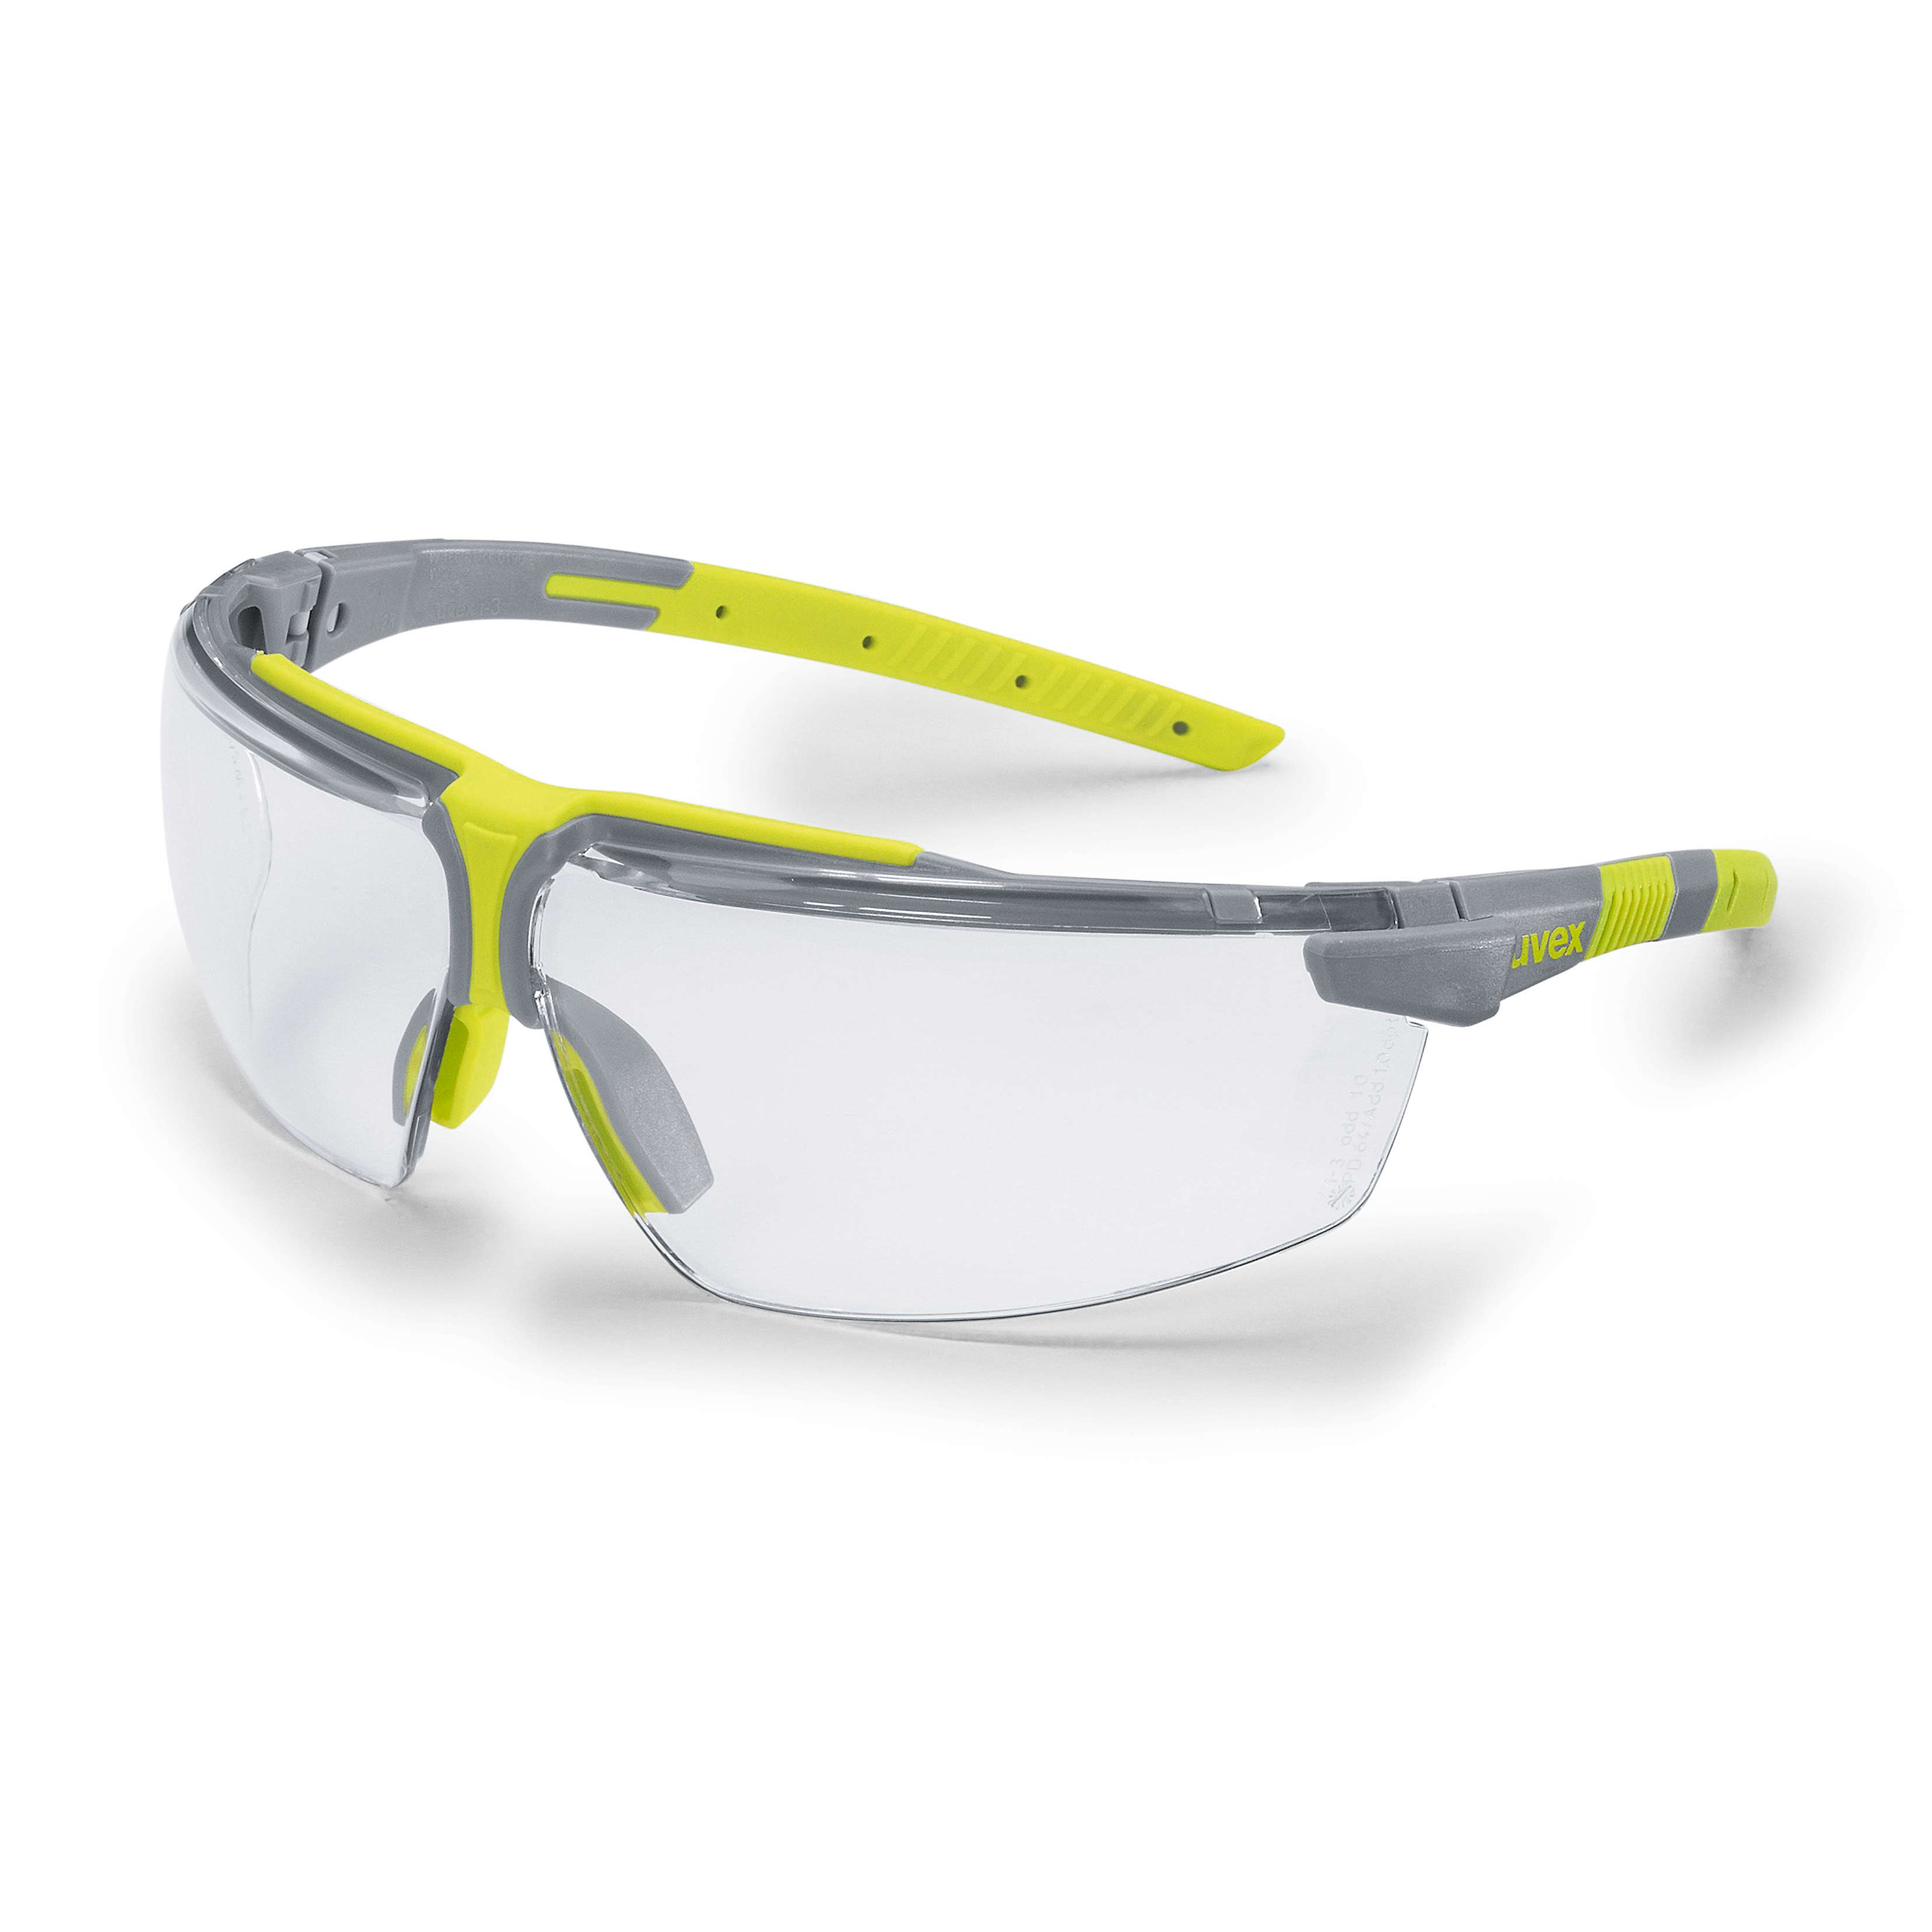 7238bcc47c uvex i-3 add 1.0 prescription safety spectacles